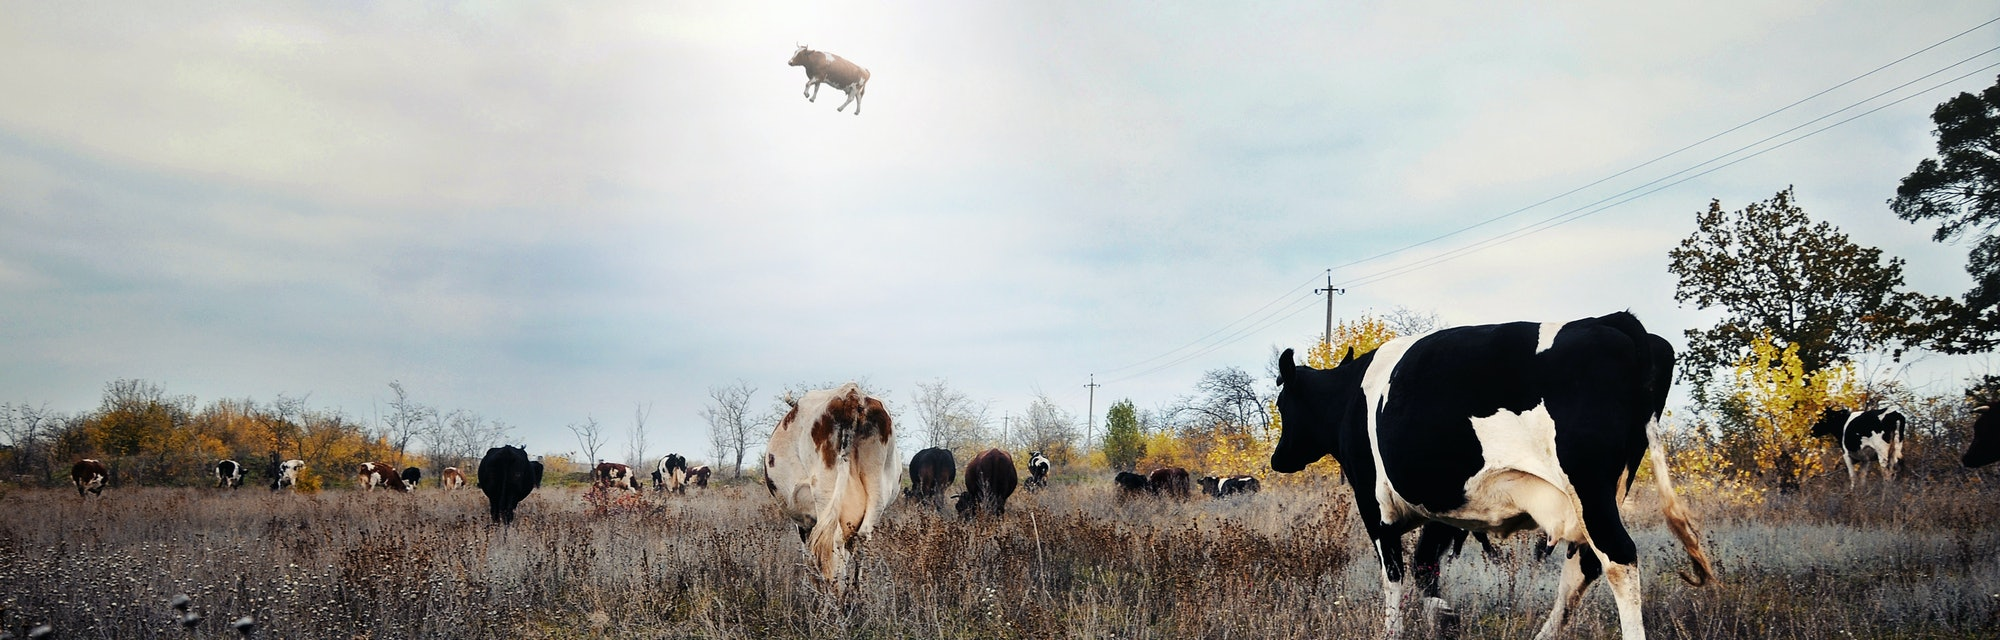 Landscape with cows and UFO. Photo with 3d rendering element